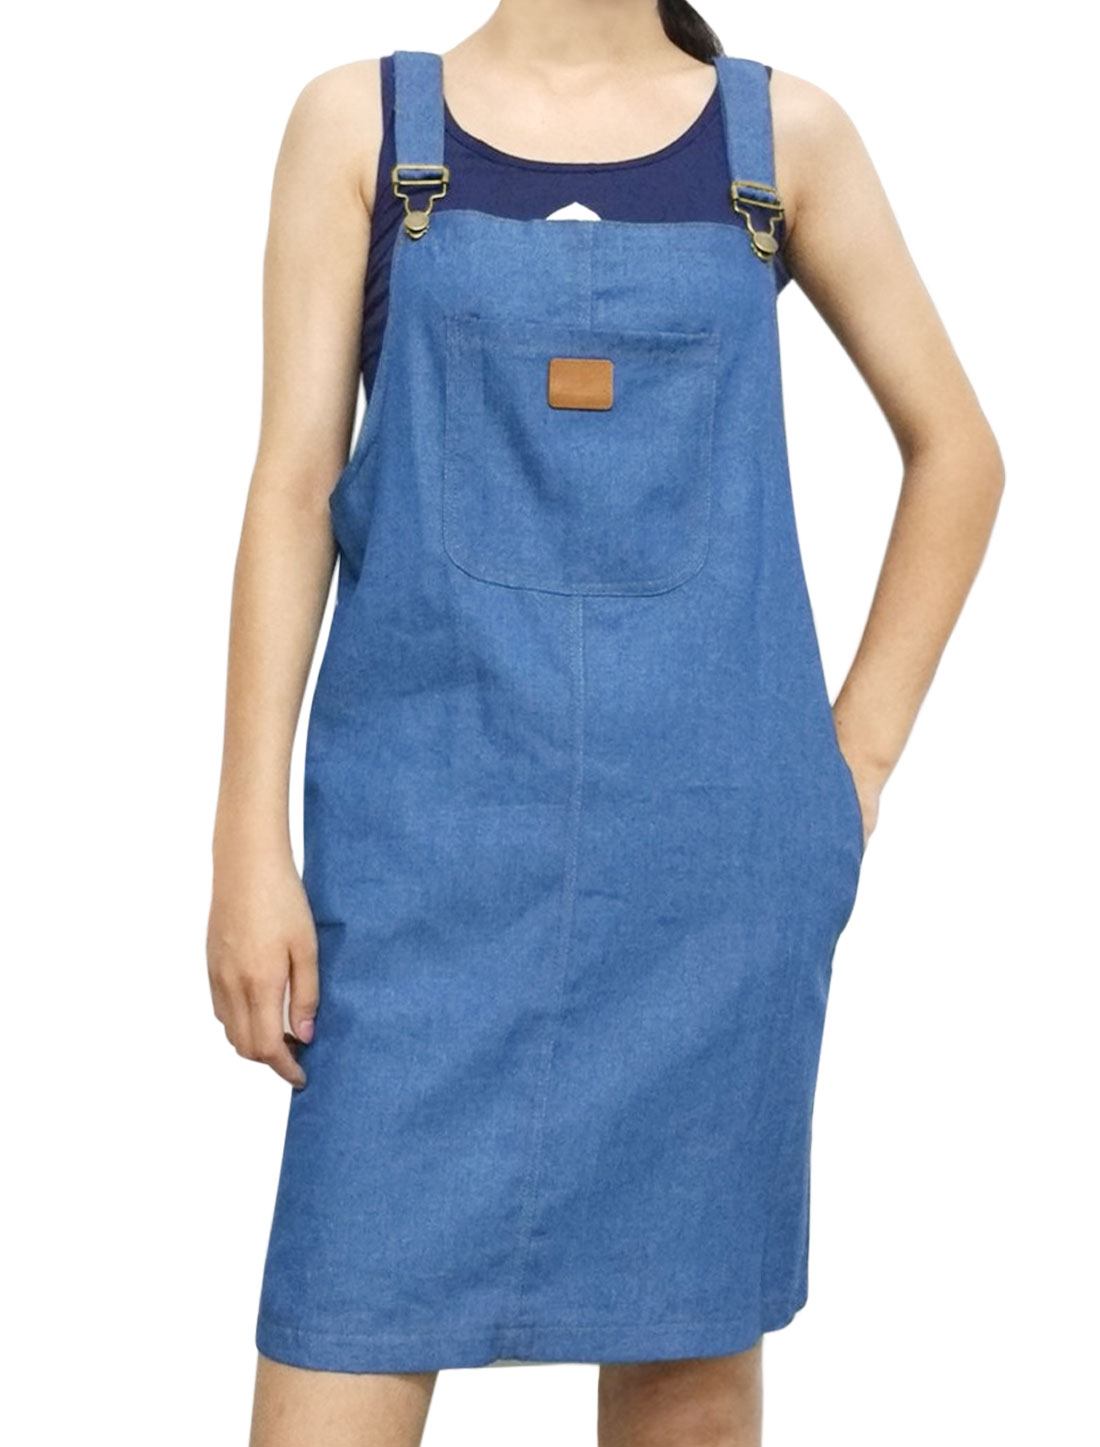 Women Front Pocket Adjustable Straps Denim Suspender Dress Dark Blue S